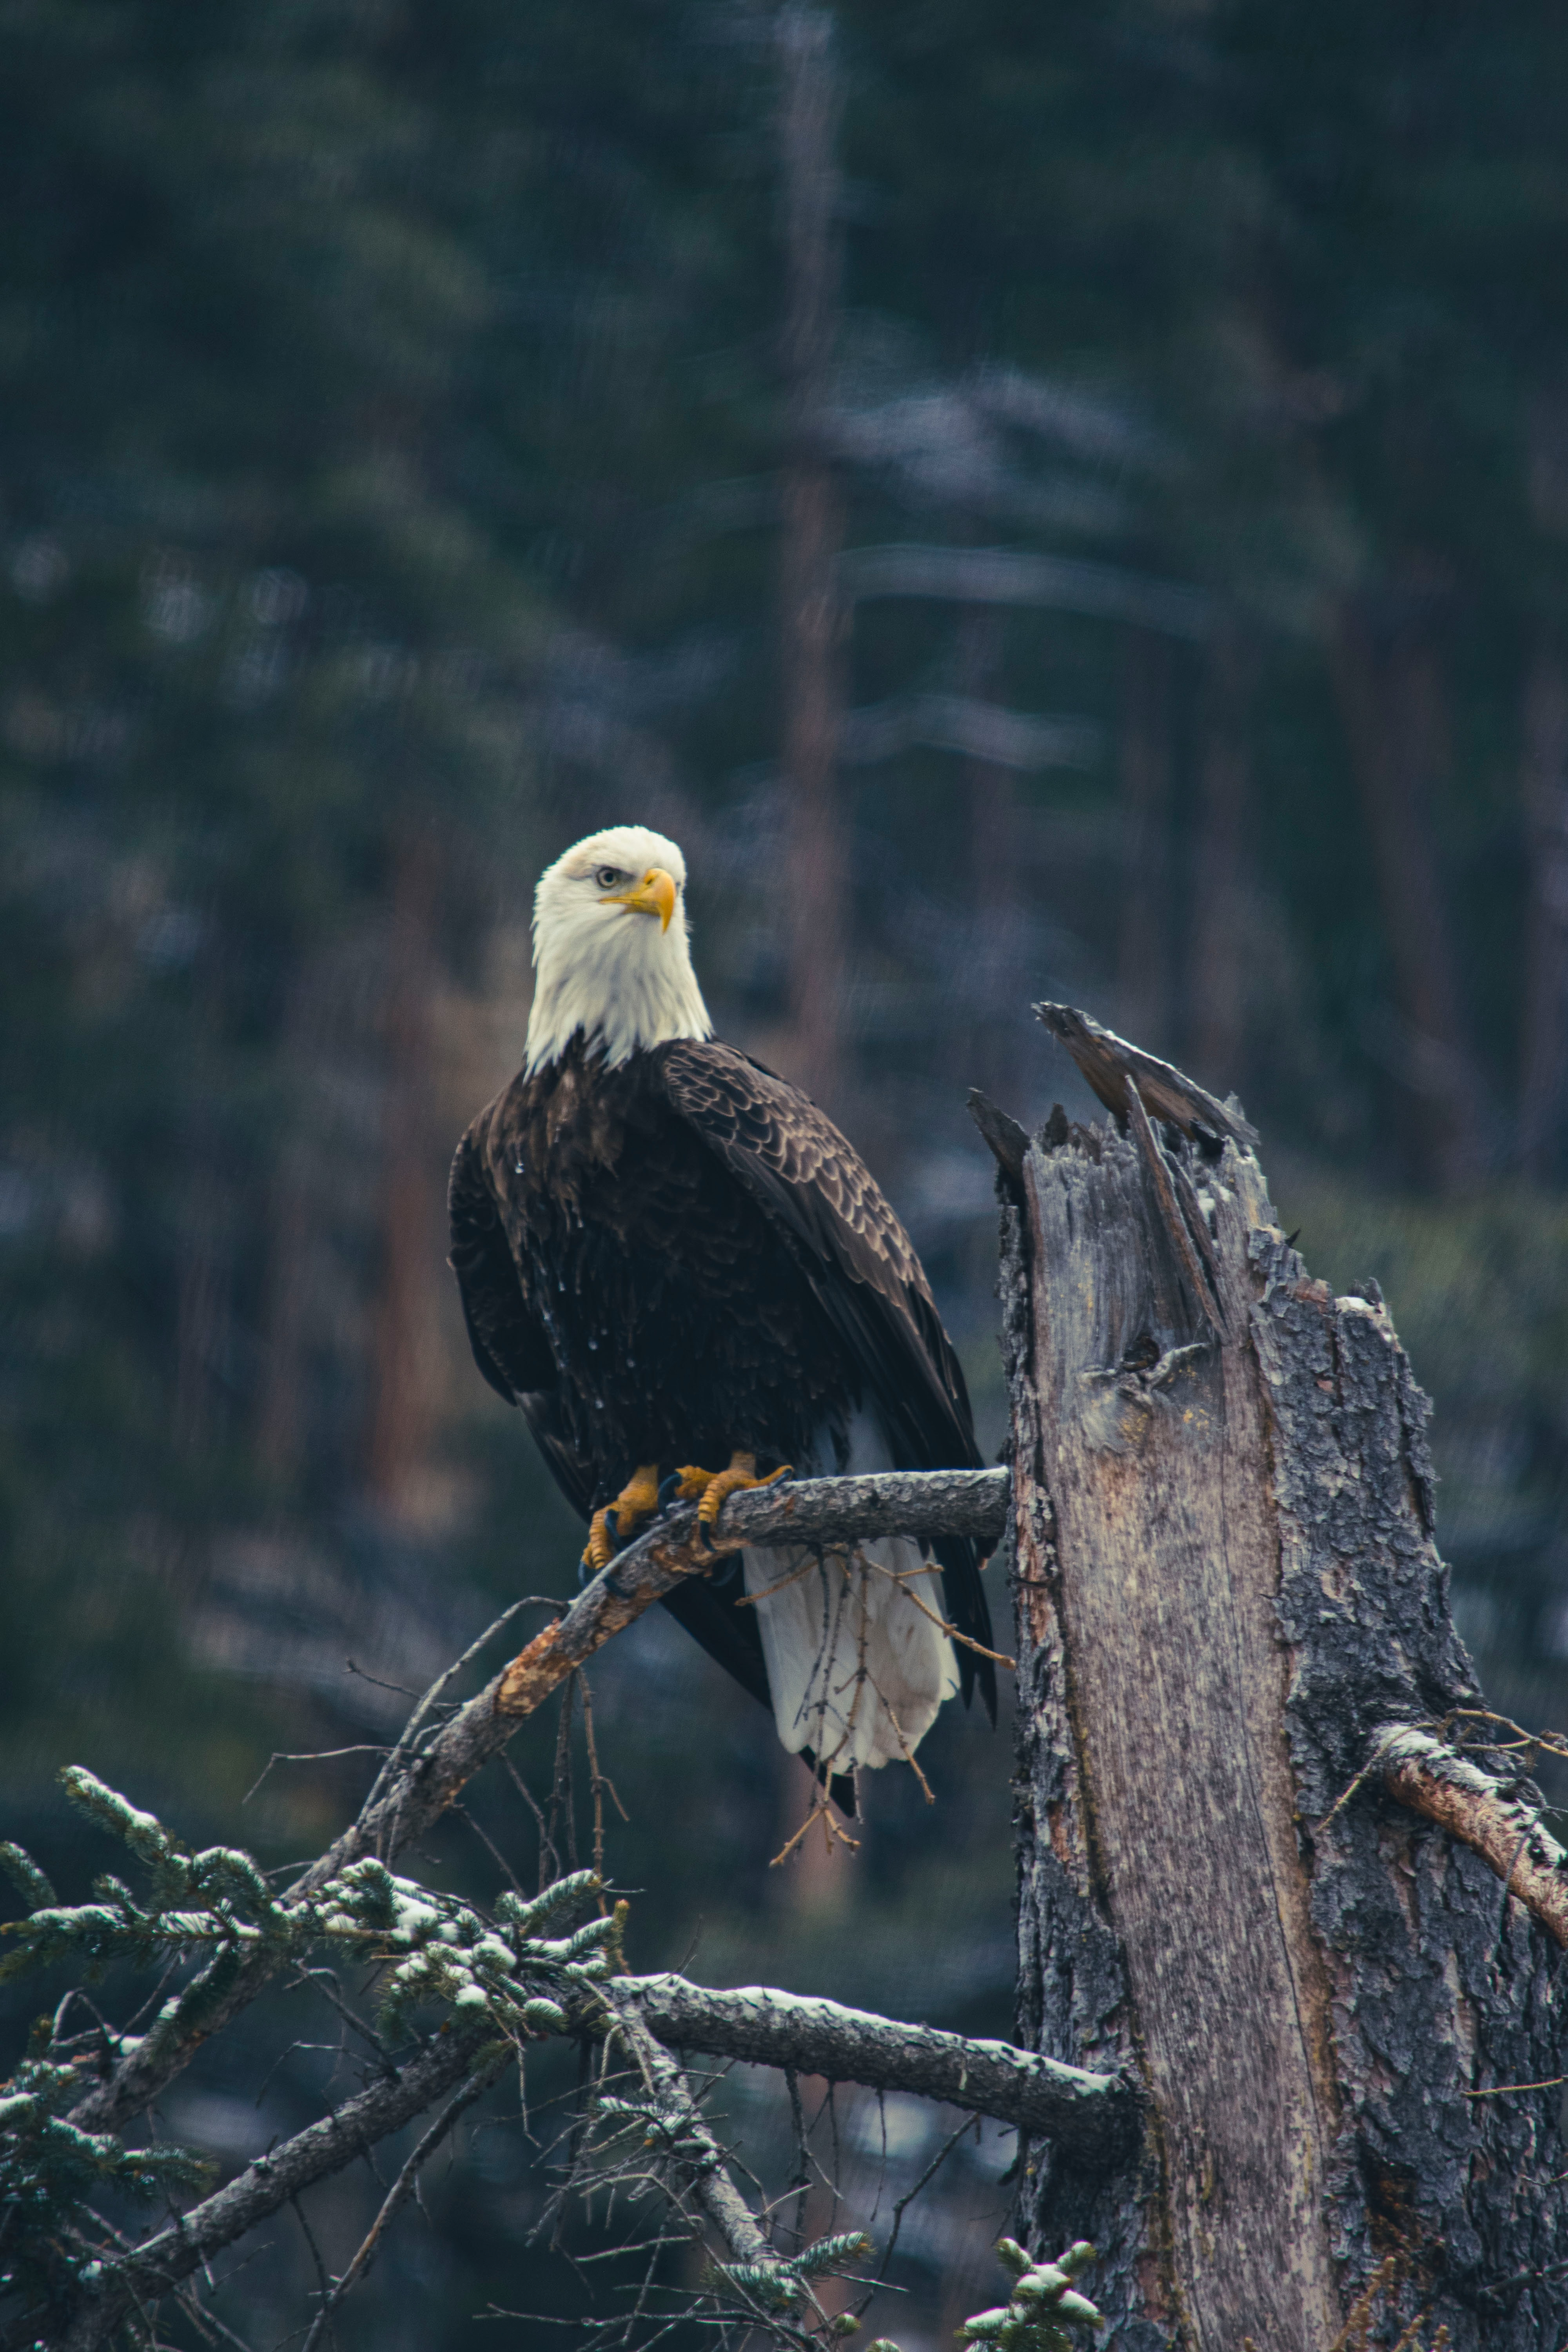 111899 download wallpaper Animals, Bald Eagle, White-Headed Eagle, Eagle, Bird, Predator, Branch screensavers and pictures for free